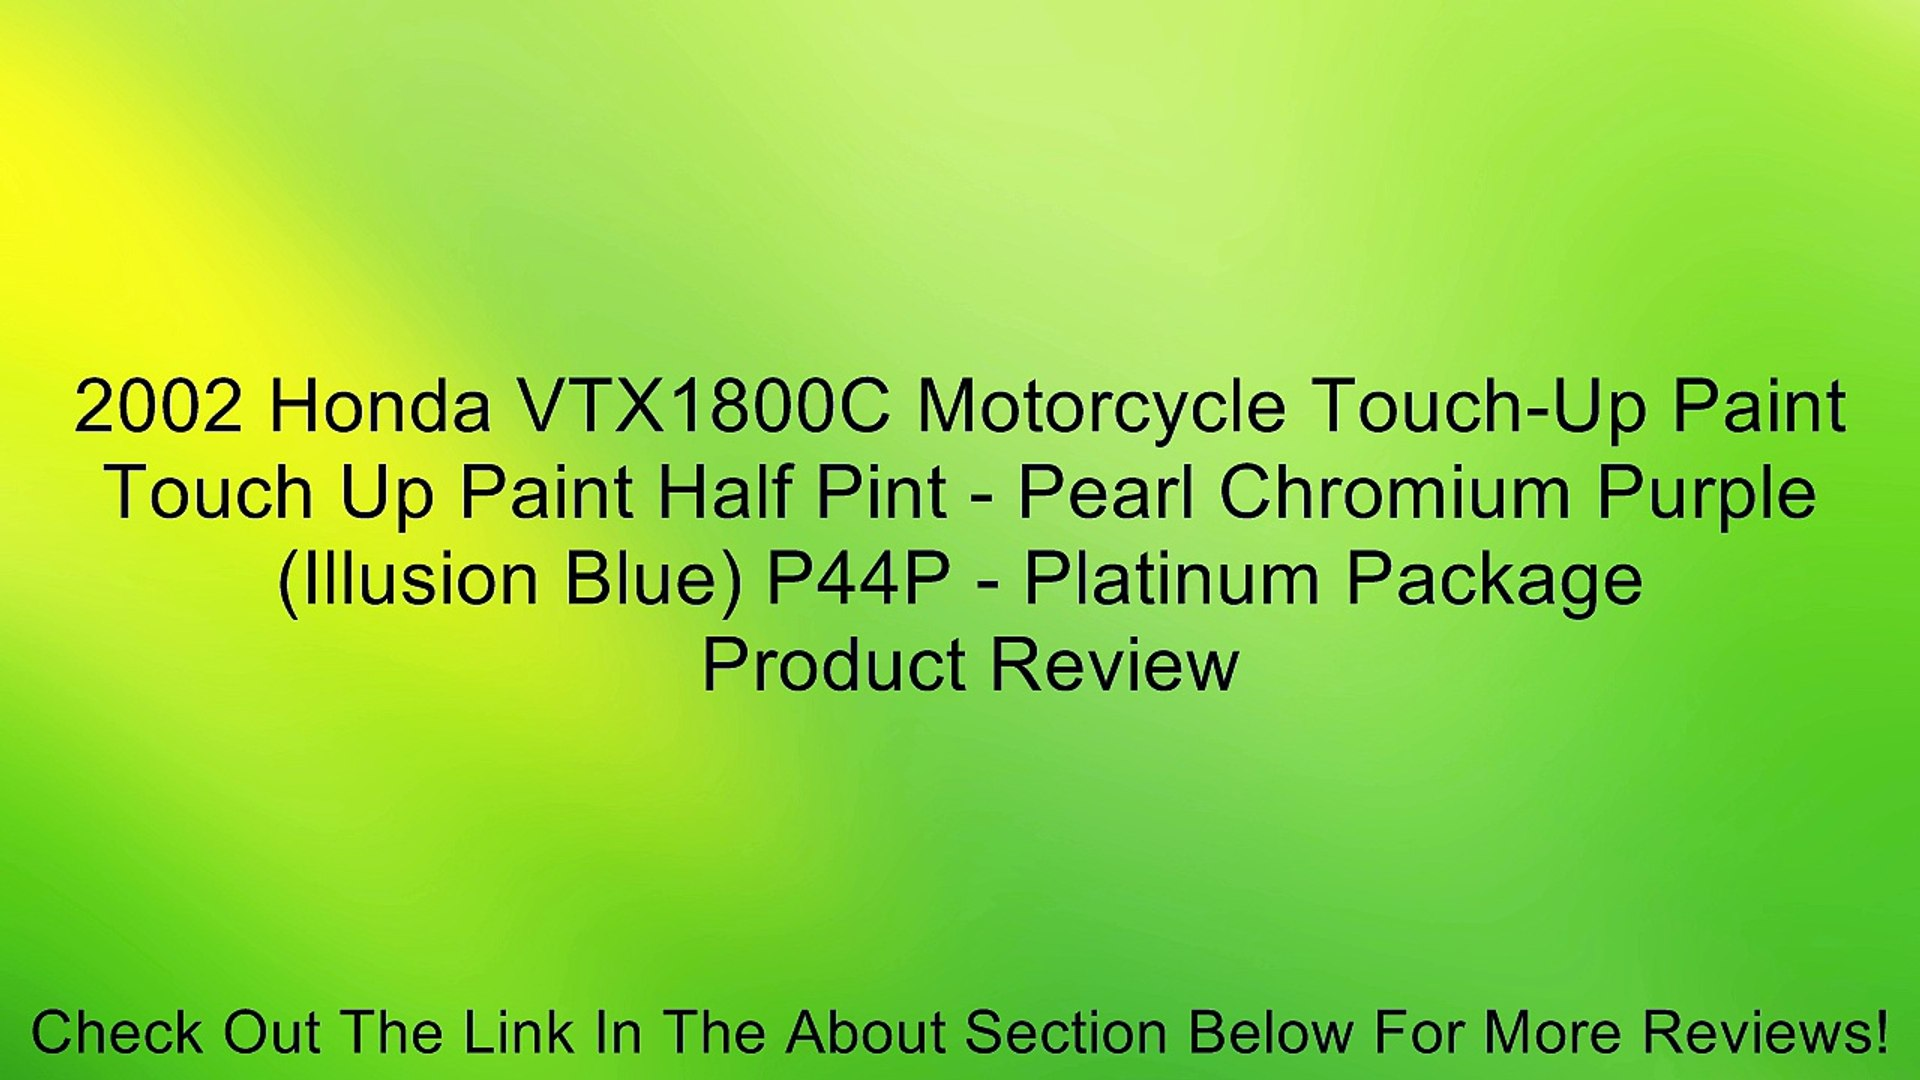 2002 Honda VTX1800C Motorcycle Touch-Up Paint Touch Up Paint Half Pint -  Pearl Chromium Purple (Illusion Blue) P44P - Platinum Package Review